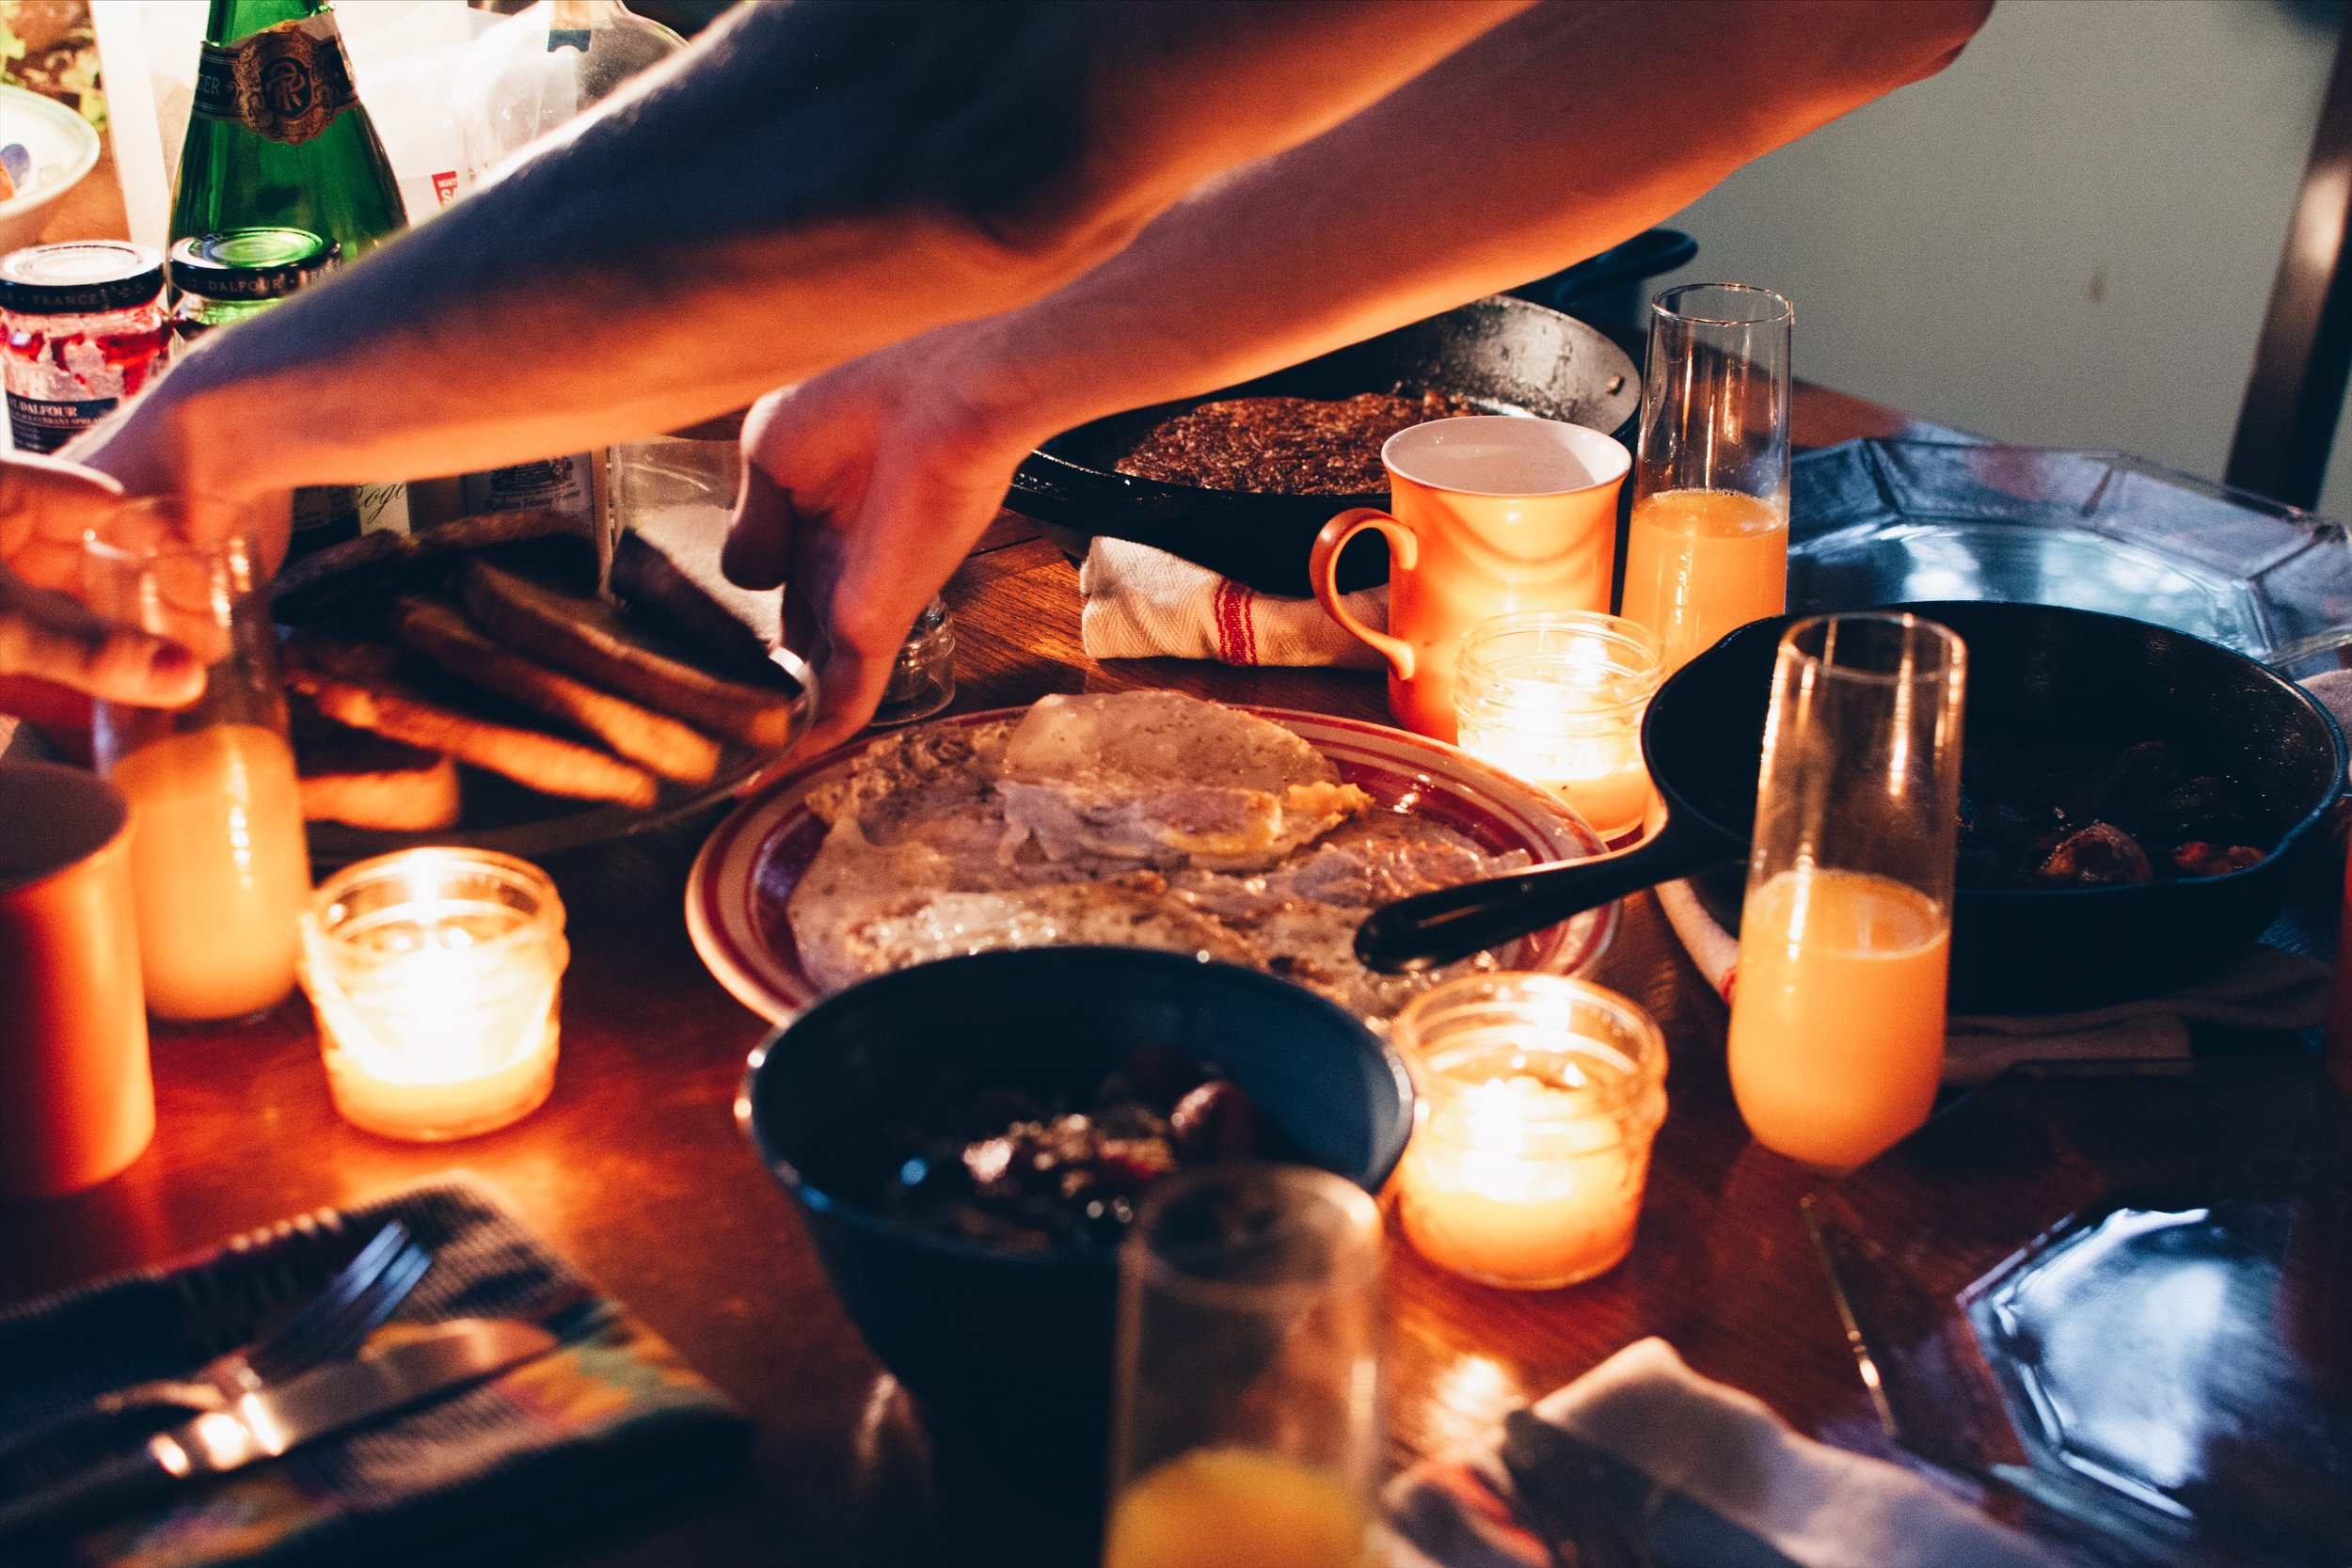 Send-off 5am breakfast for dear visiting friends: eggs, bacon, fruit, toast, hashbrowns, orange juice, coffee, beeswax candles.